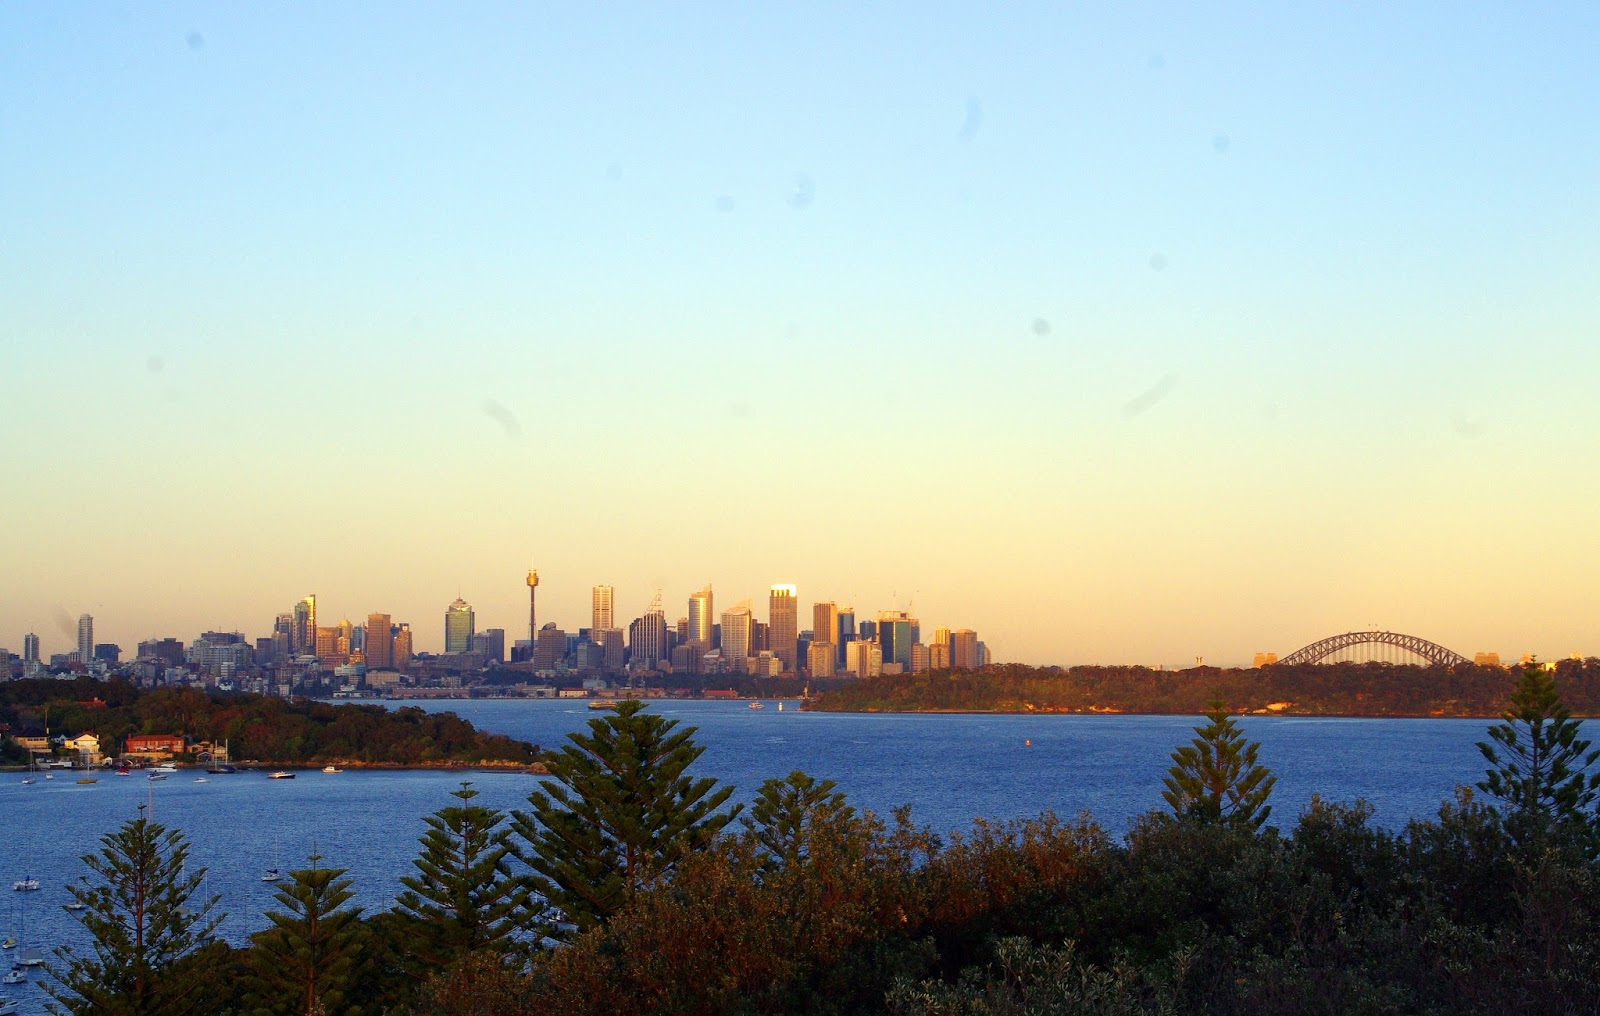 Sydney skyline within the rising sun